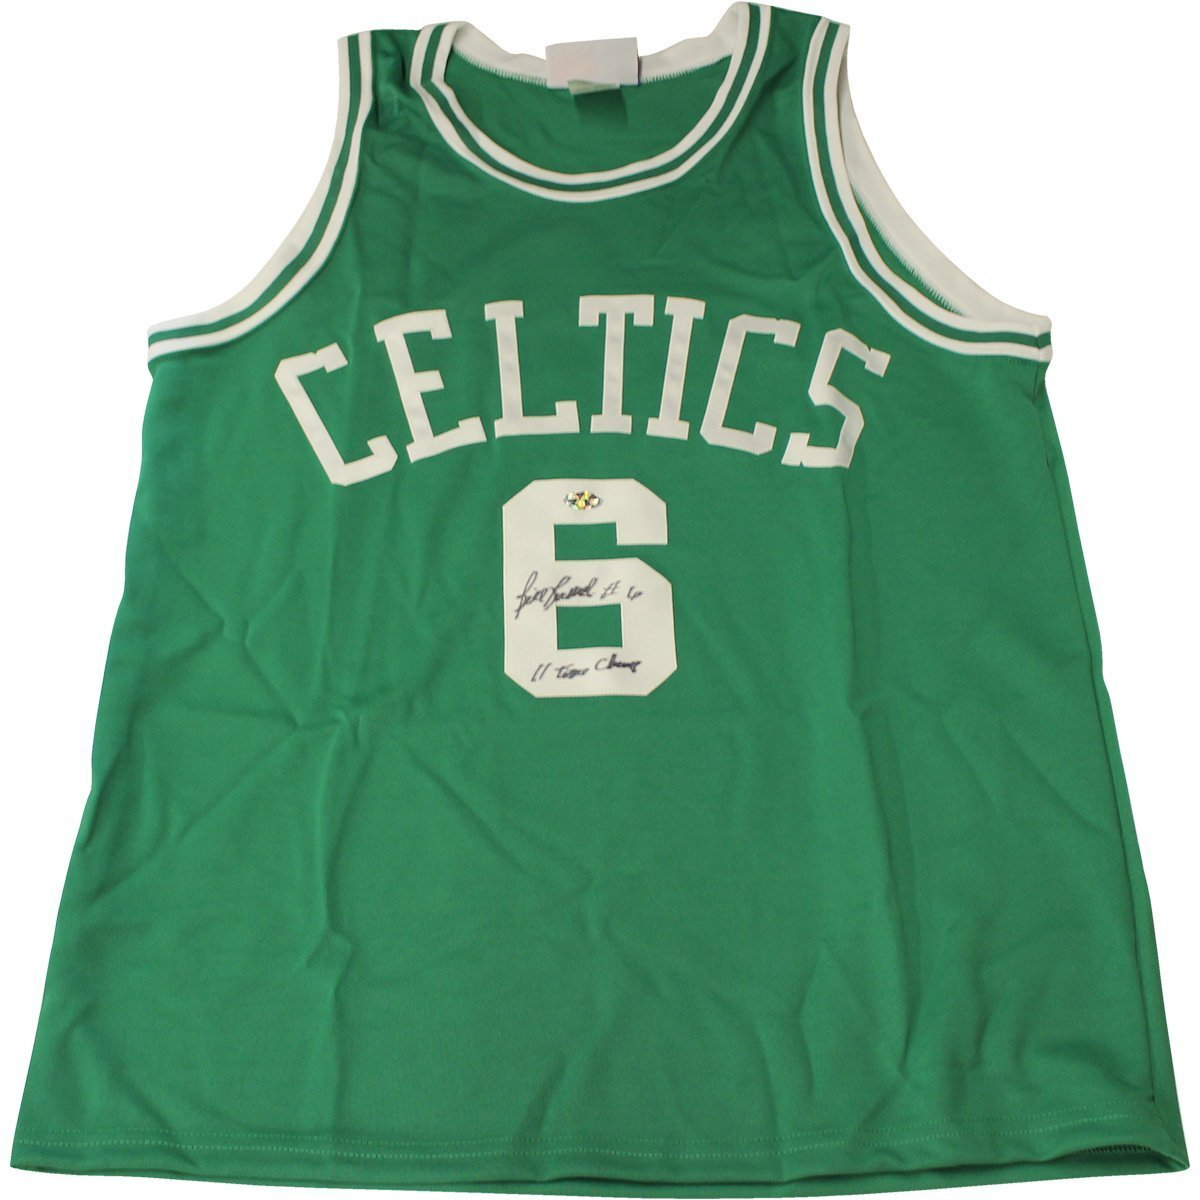 separation shoes f22c8 618ba Bill Russell Signed Custom Green Celtics Jersey w/